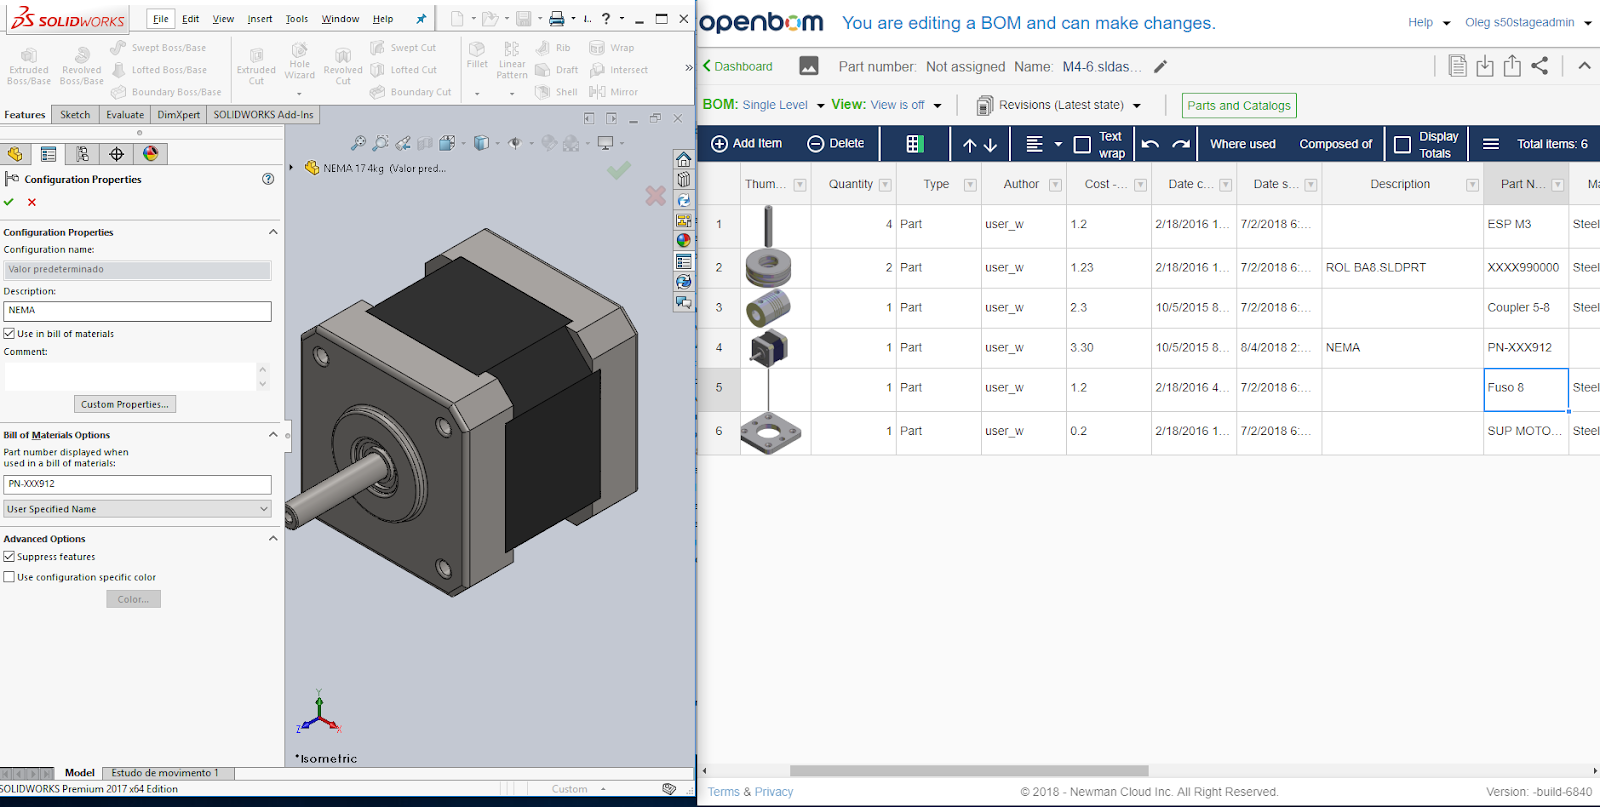 Openbom Solidworks Data Exchange Bits And Bytes Medium Back Of Computer Diagram To Sync It Only If The Option Is Set User Specific Name Please Keep In Mind Description Must Be Configured As Well Extracted Bom